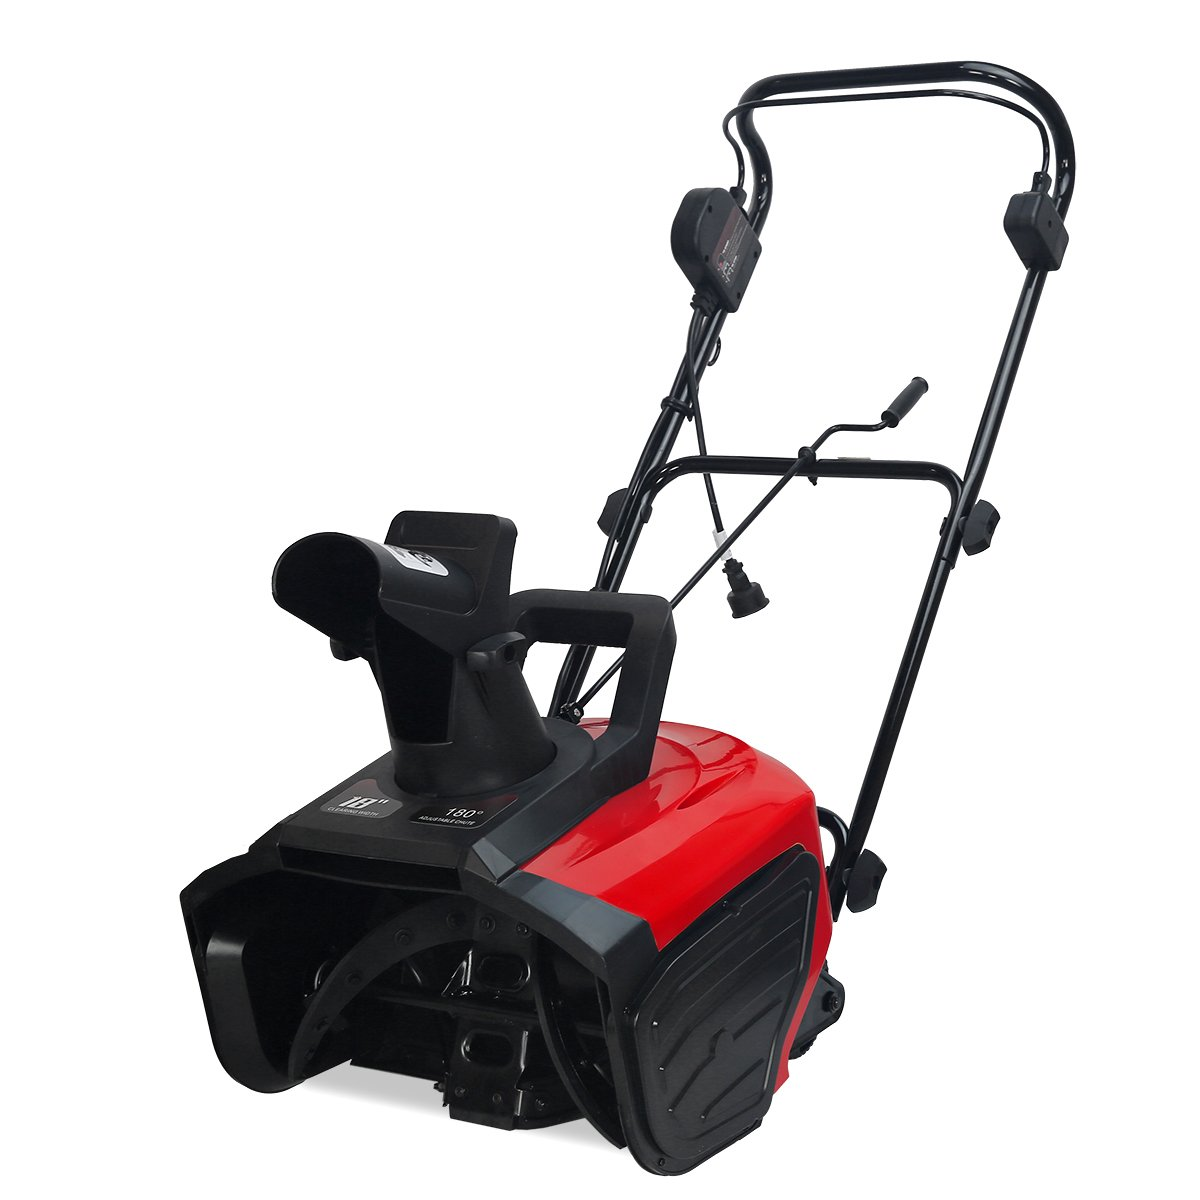 XtremepowerUS 1600w Ultra Electric Snow Blaster 18-Inch Electric Snow Thrower Adjustable Directional Driveway Walkway